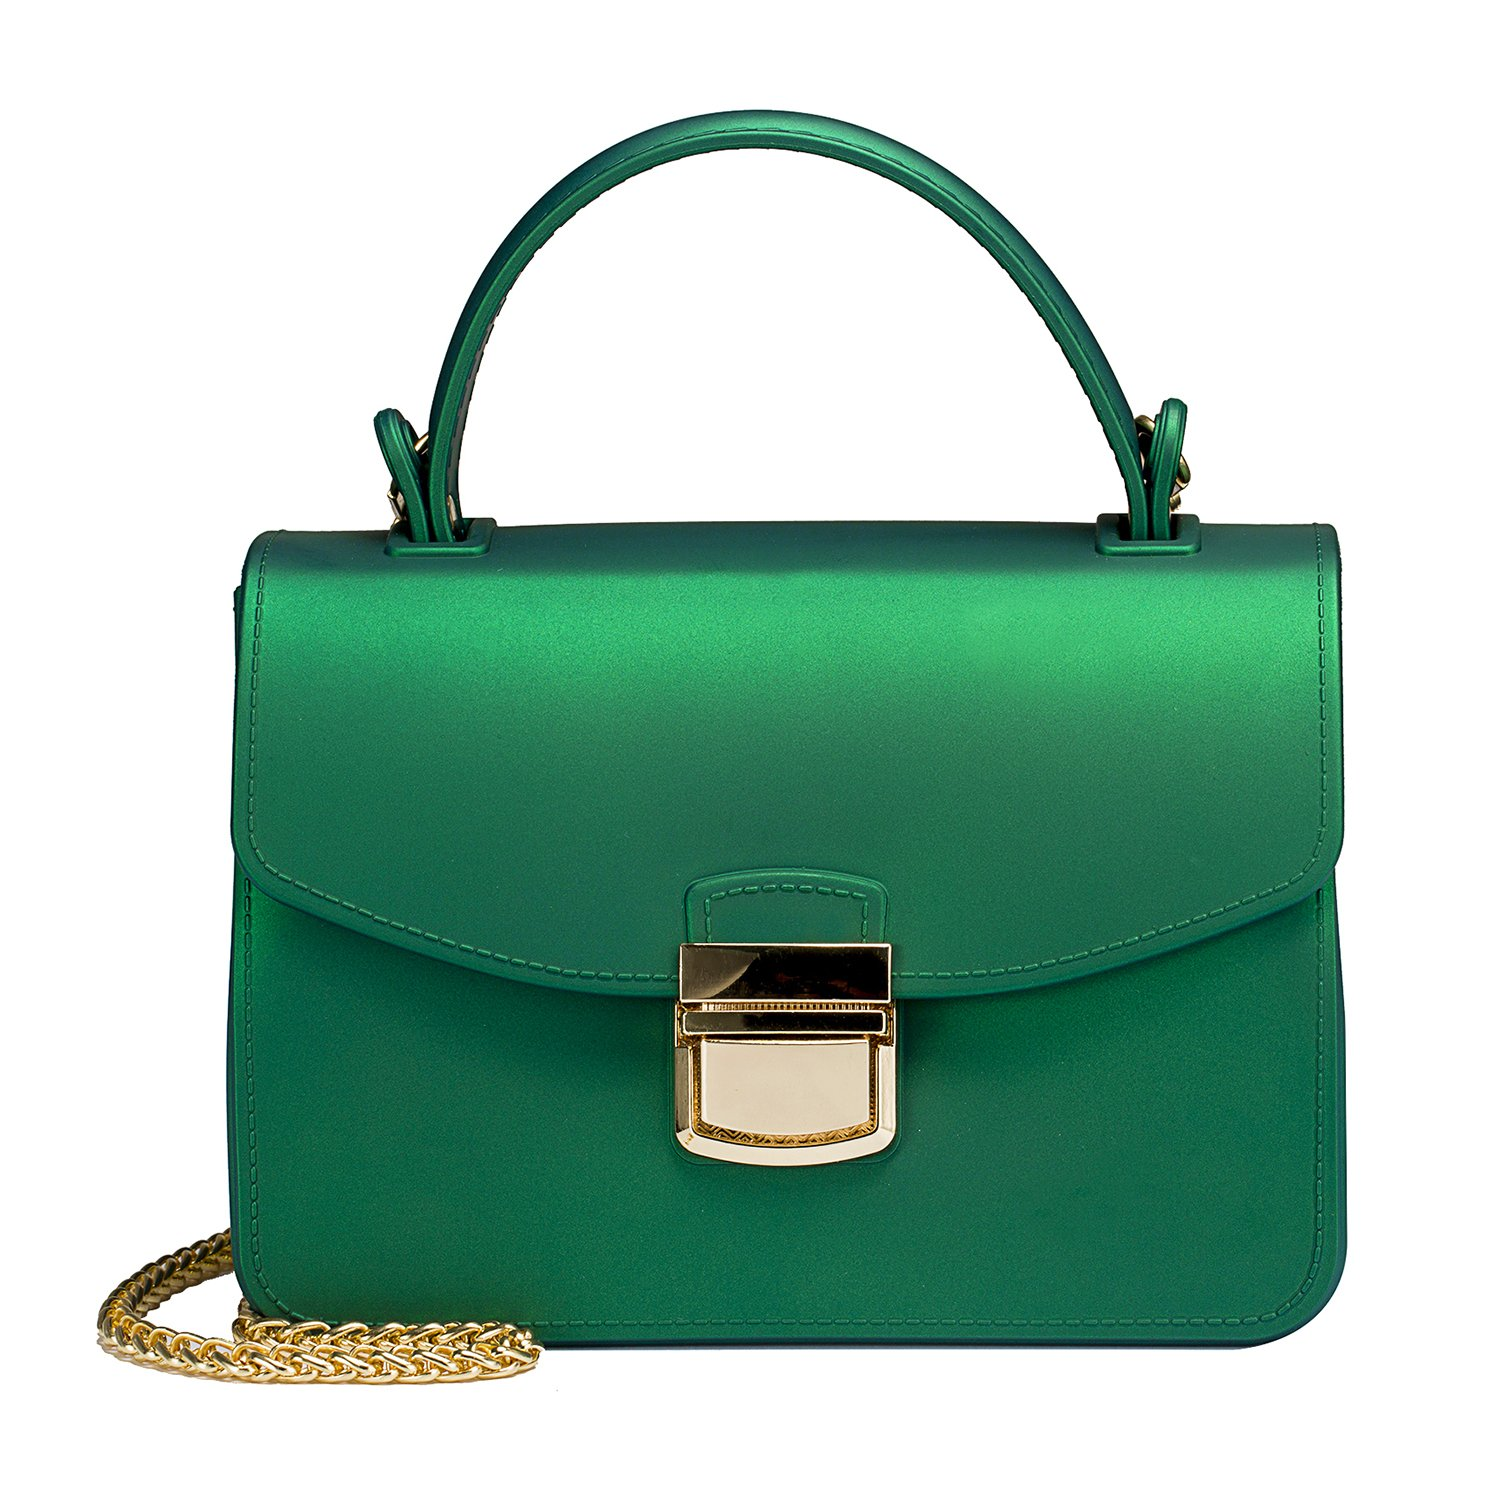 Small Top Handle Handbags Jelly Satchel Bags for Women Tote Purse - Green